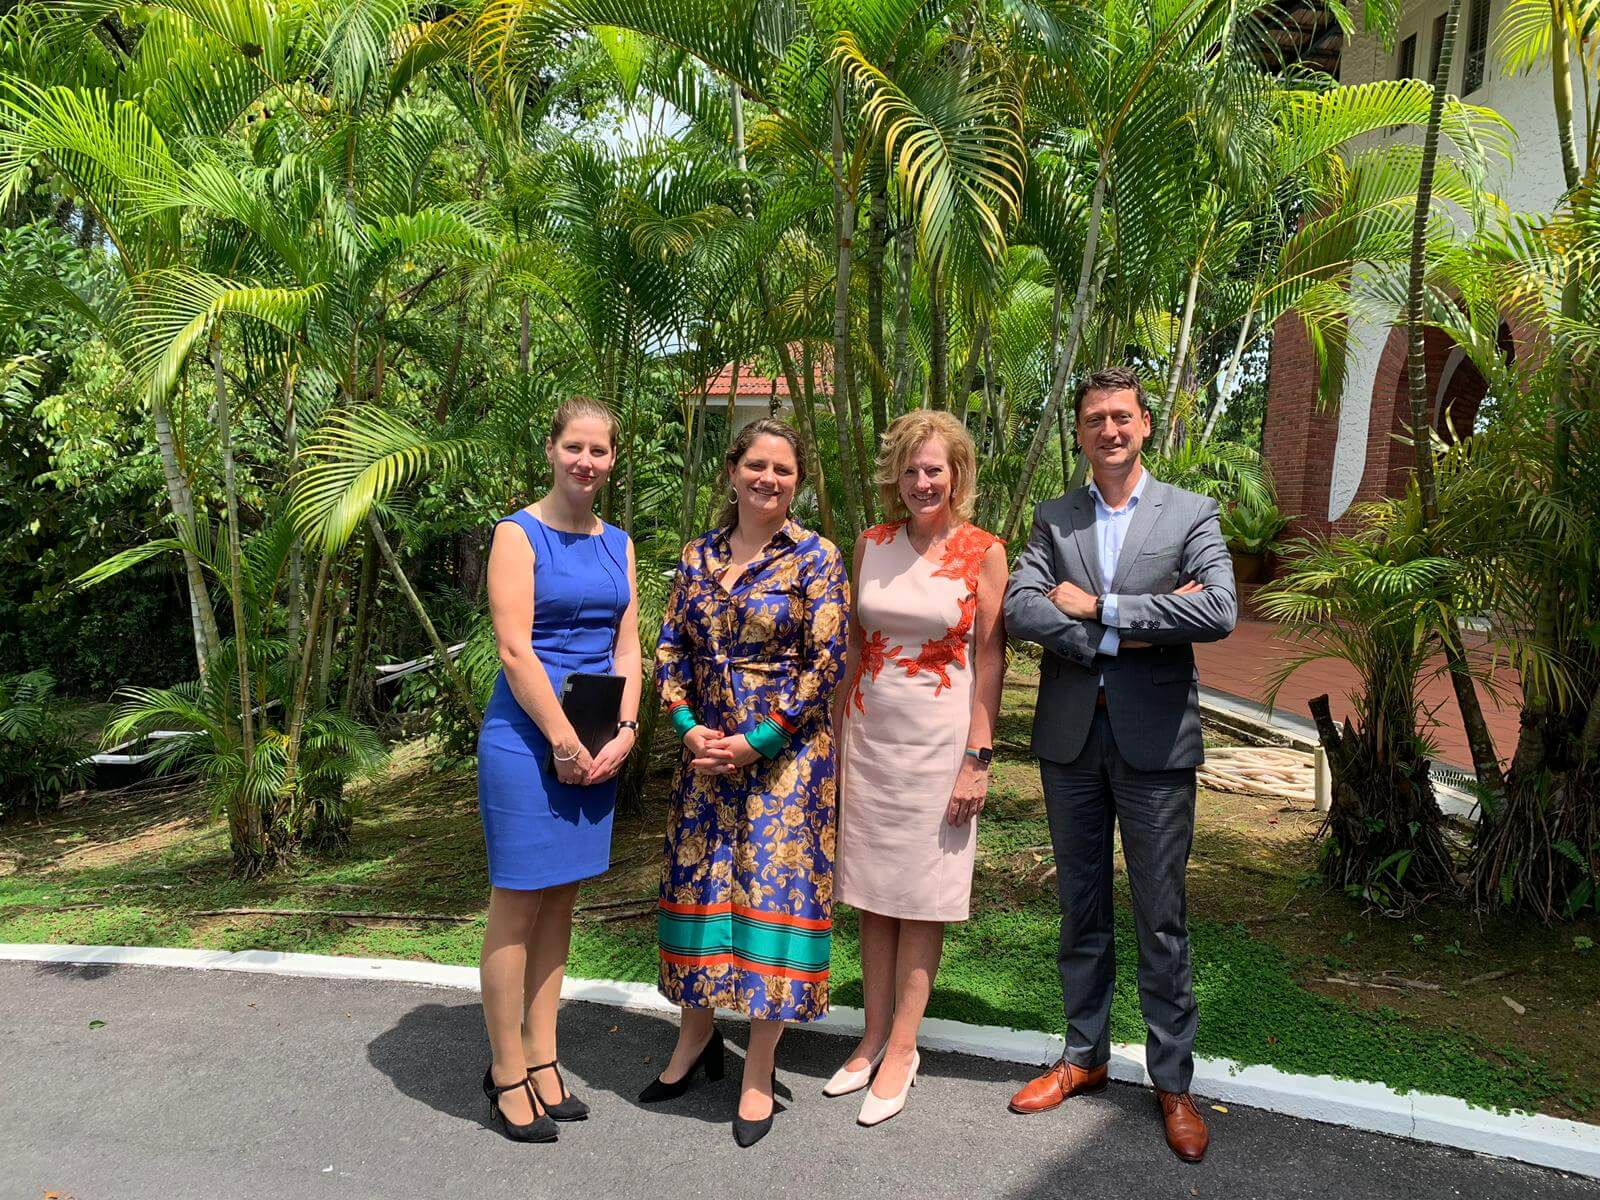 #RotterdamSingapore #CleanTech mission 2019: delegation welcomed by Ms. Margriet Vonno, Ambassador of the Netherlands to Singapore and Brunei.